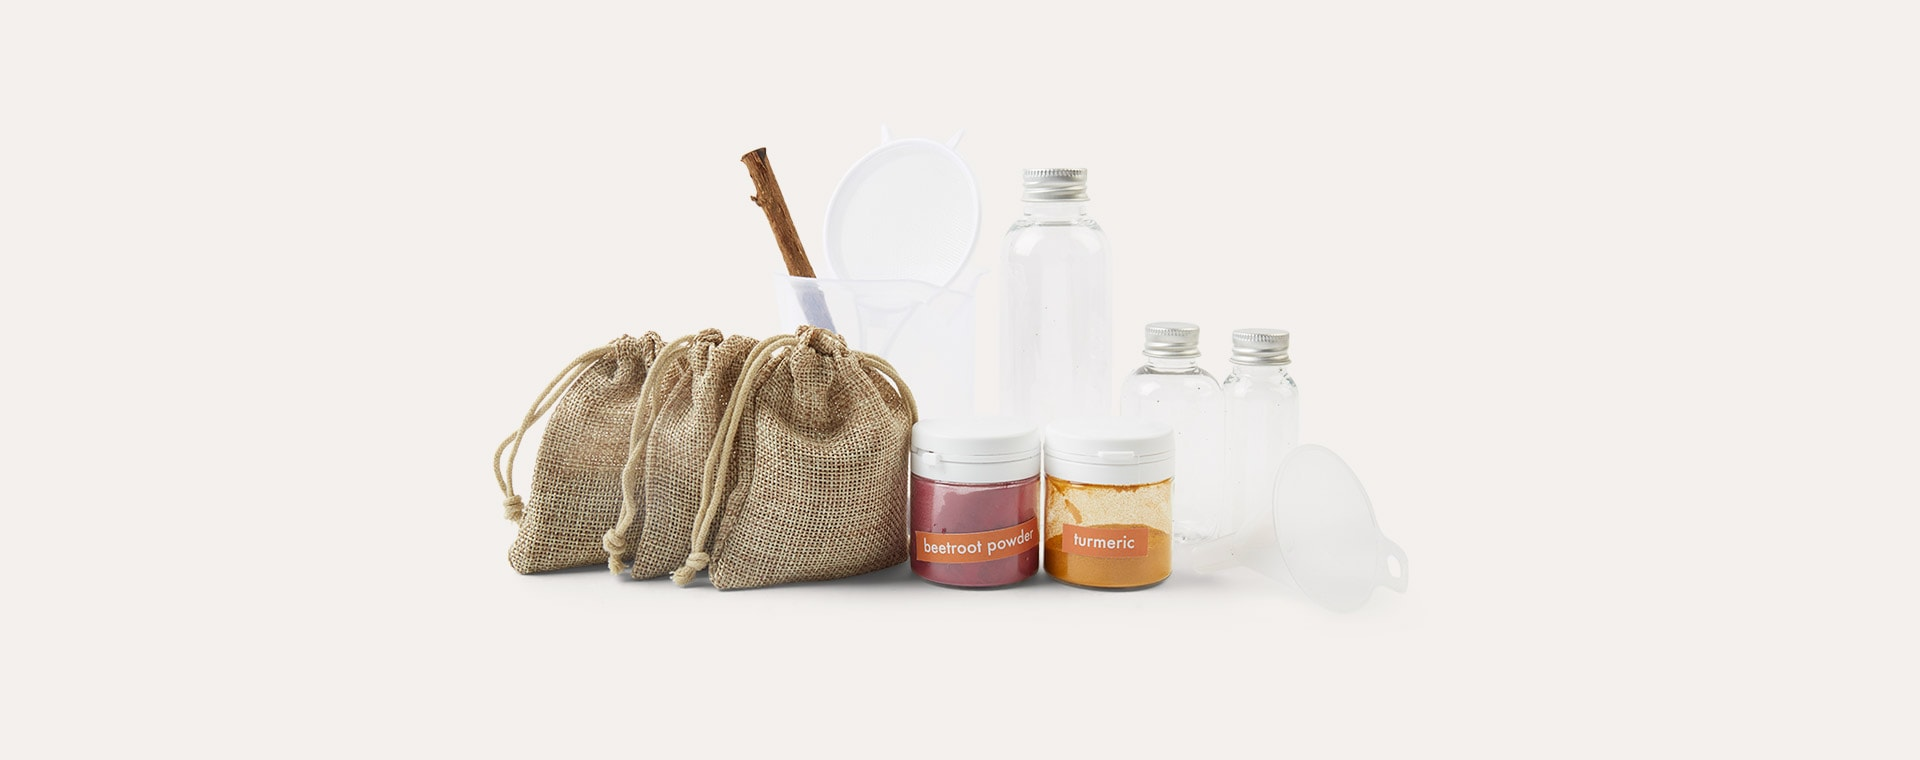 Neutral The Den Kit Portable Potion Making Kit